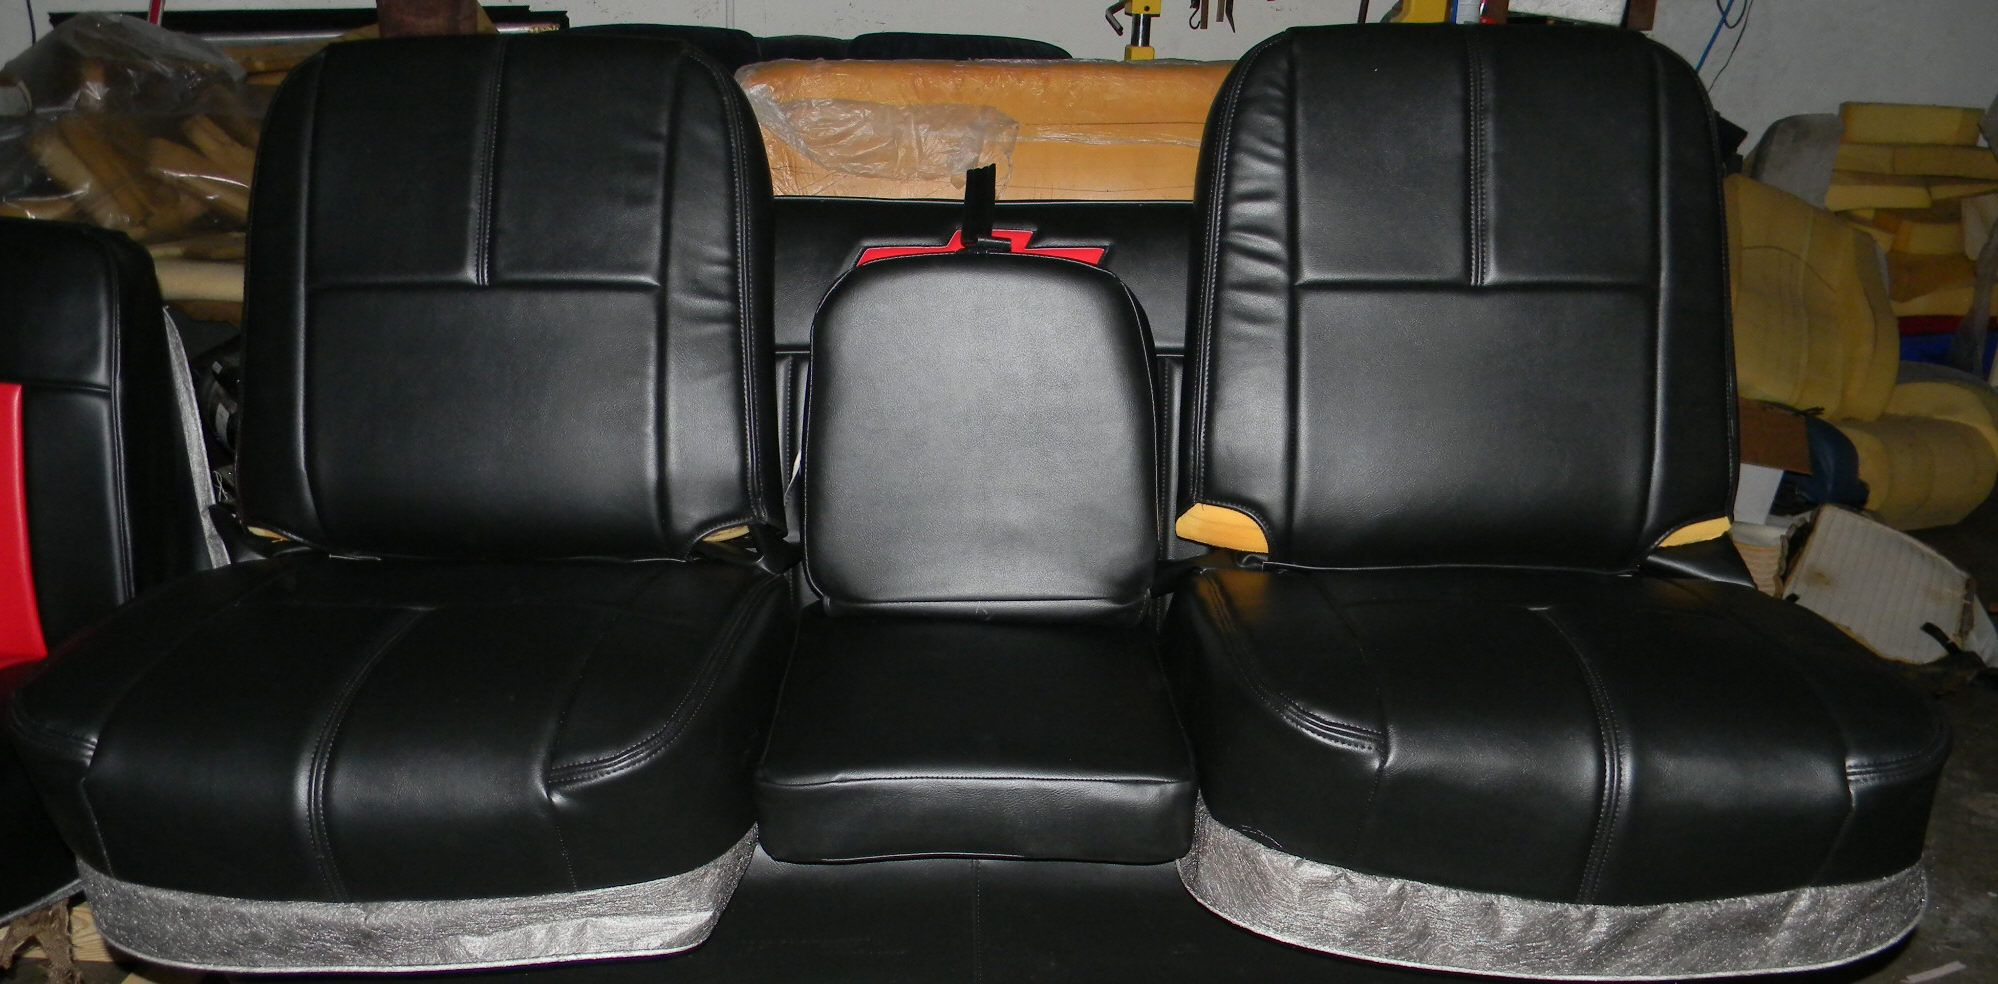 How to install Center Jump Seat and swap center Console on ... |Silverado Bucket Seats And Console